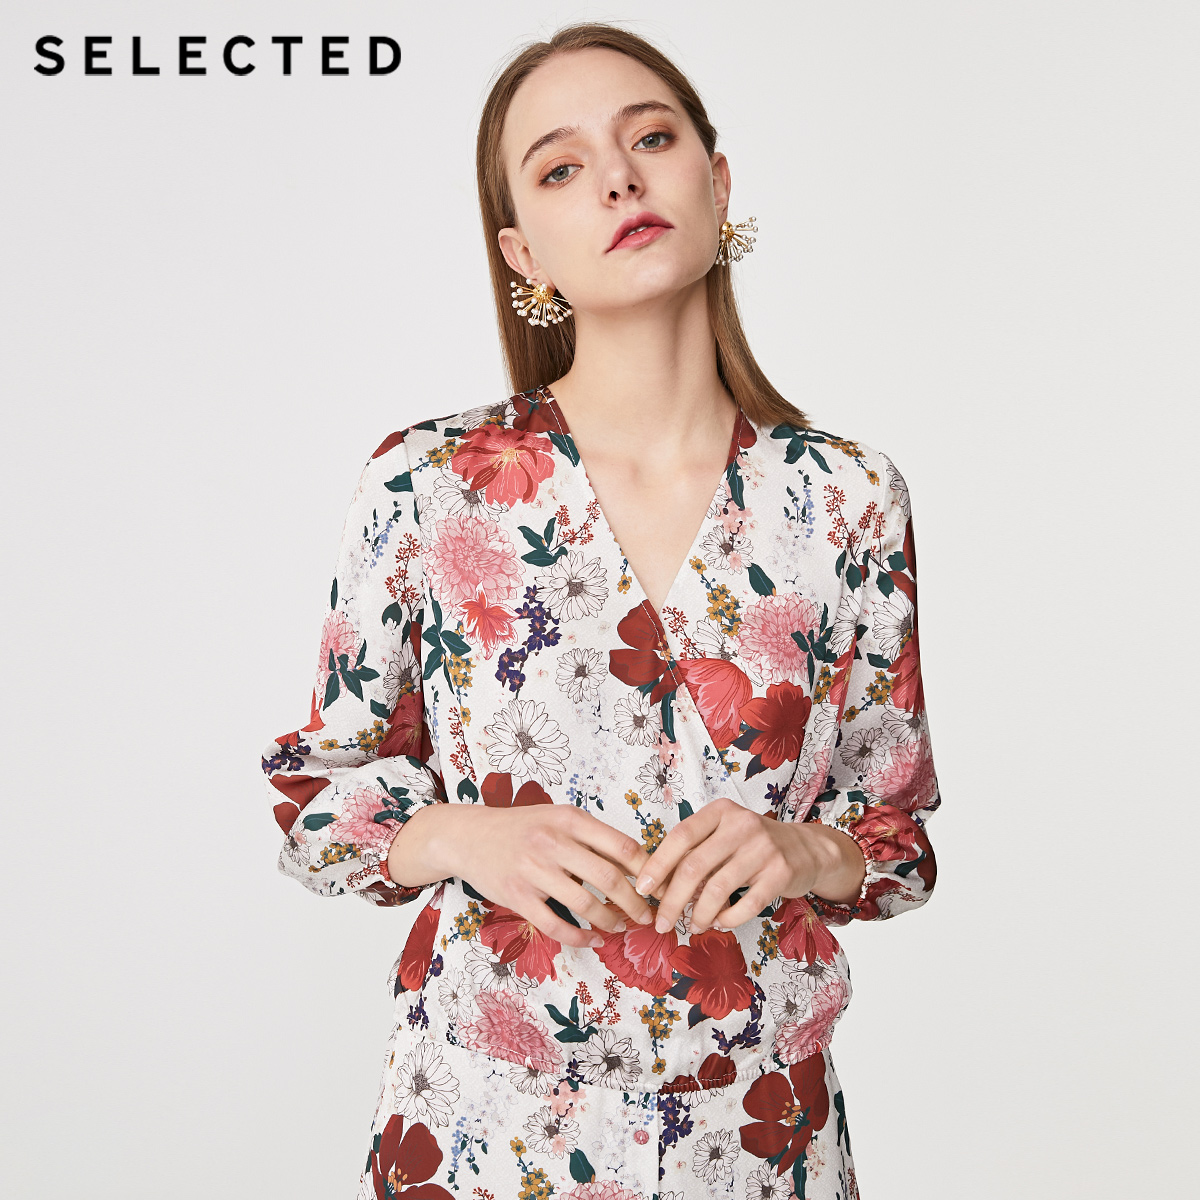 SELECTED Women's Summer Chiffon Print Loose Fit Long-sleeved Shirt S|419251508